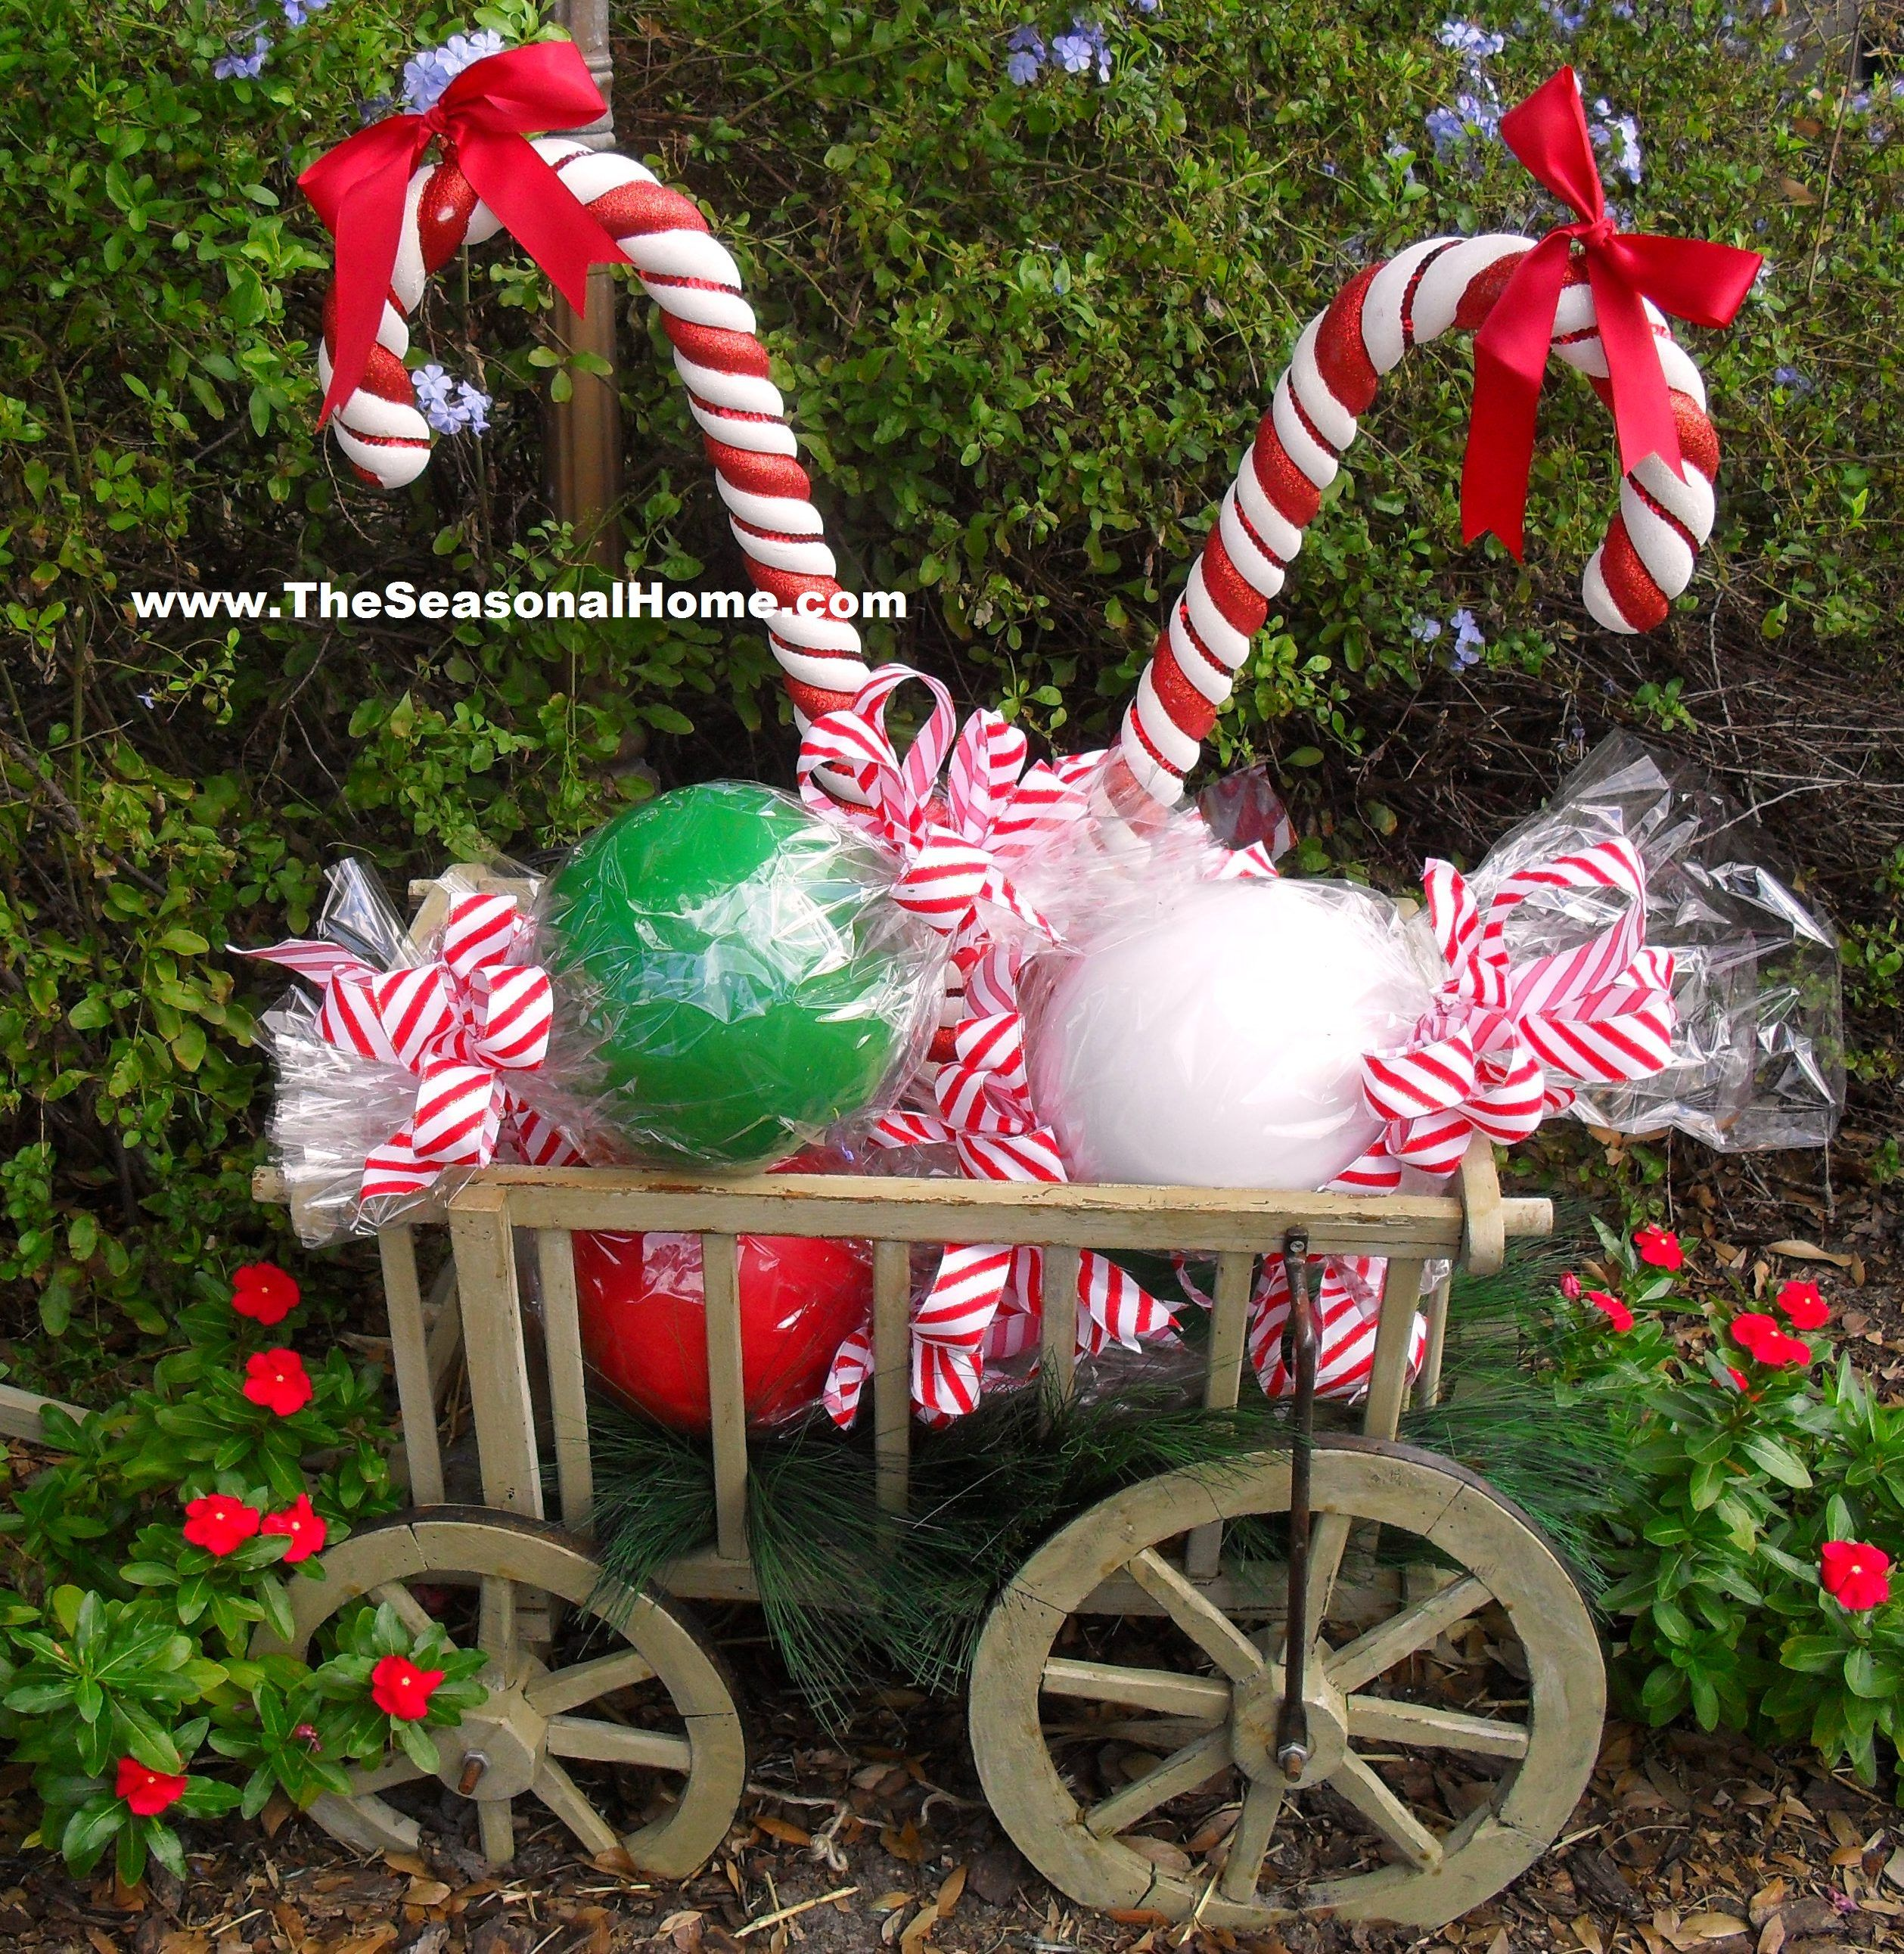 How to diy outdoor candy on the seasonal home blog for Deco noel exterieur fabriquer